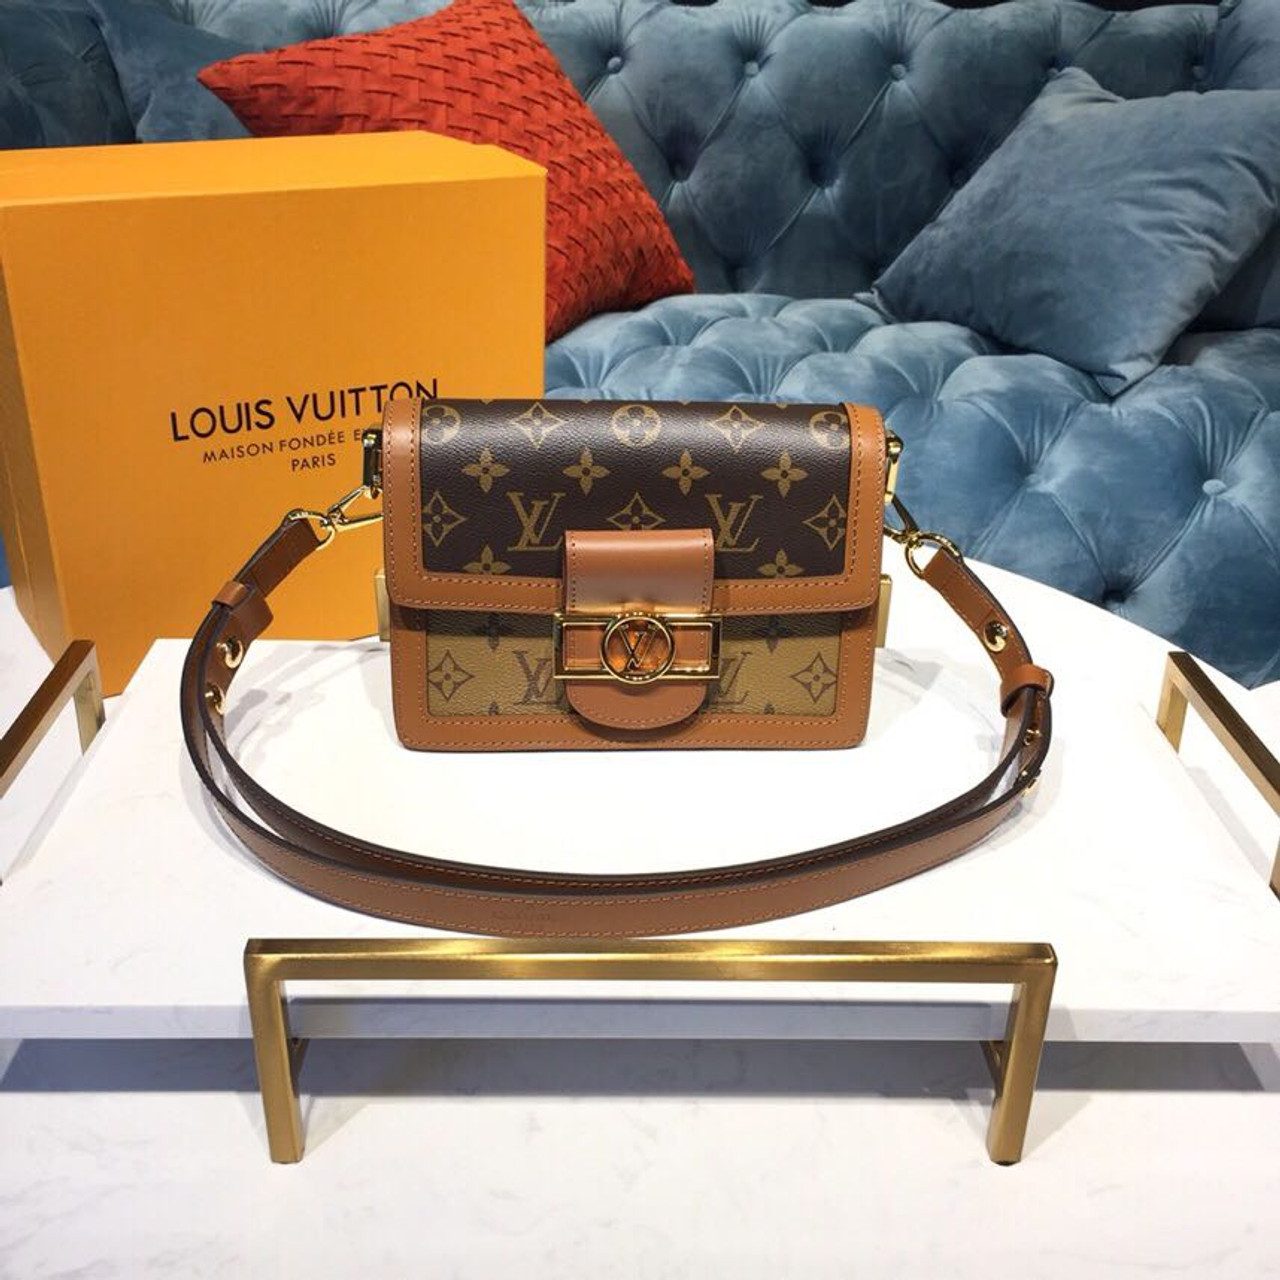 e638f74e33 Louis Vuitton Mini Dauphine Bag 20cm Monogram and Monogram Reverse Canvas  Spring/Summer 2019 Collection M44580, Brown